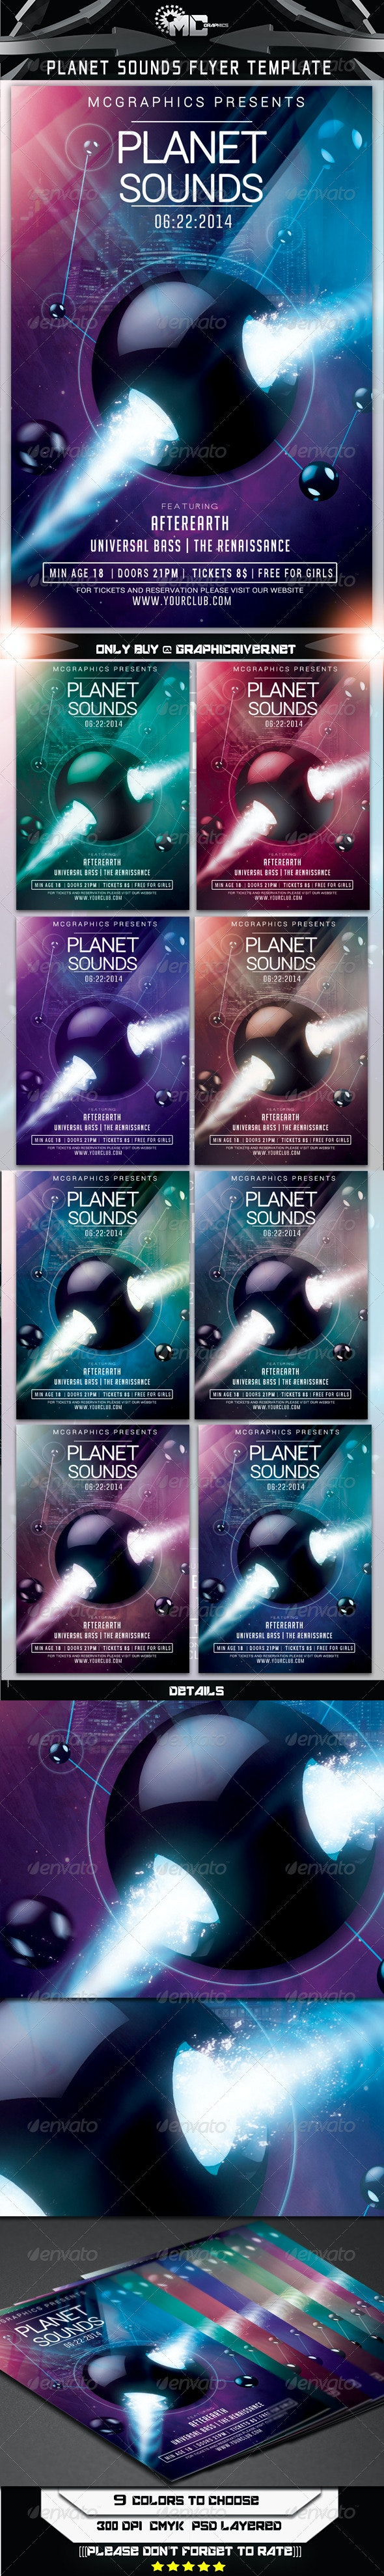 Planet Sounds Flyer Template - Flyers Print Templates